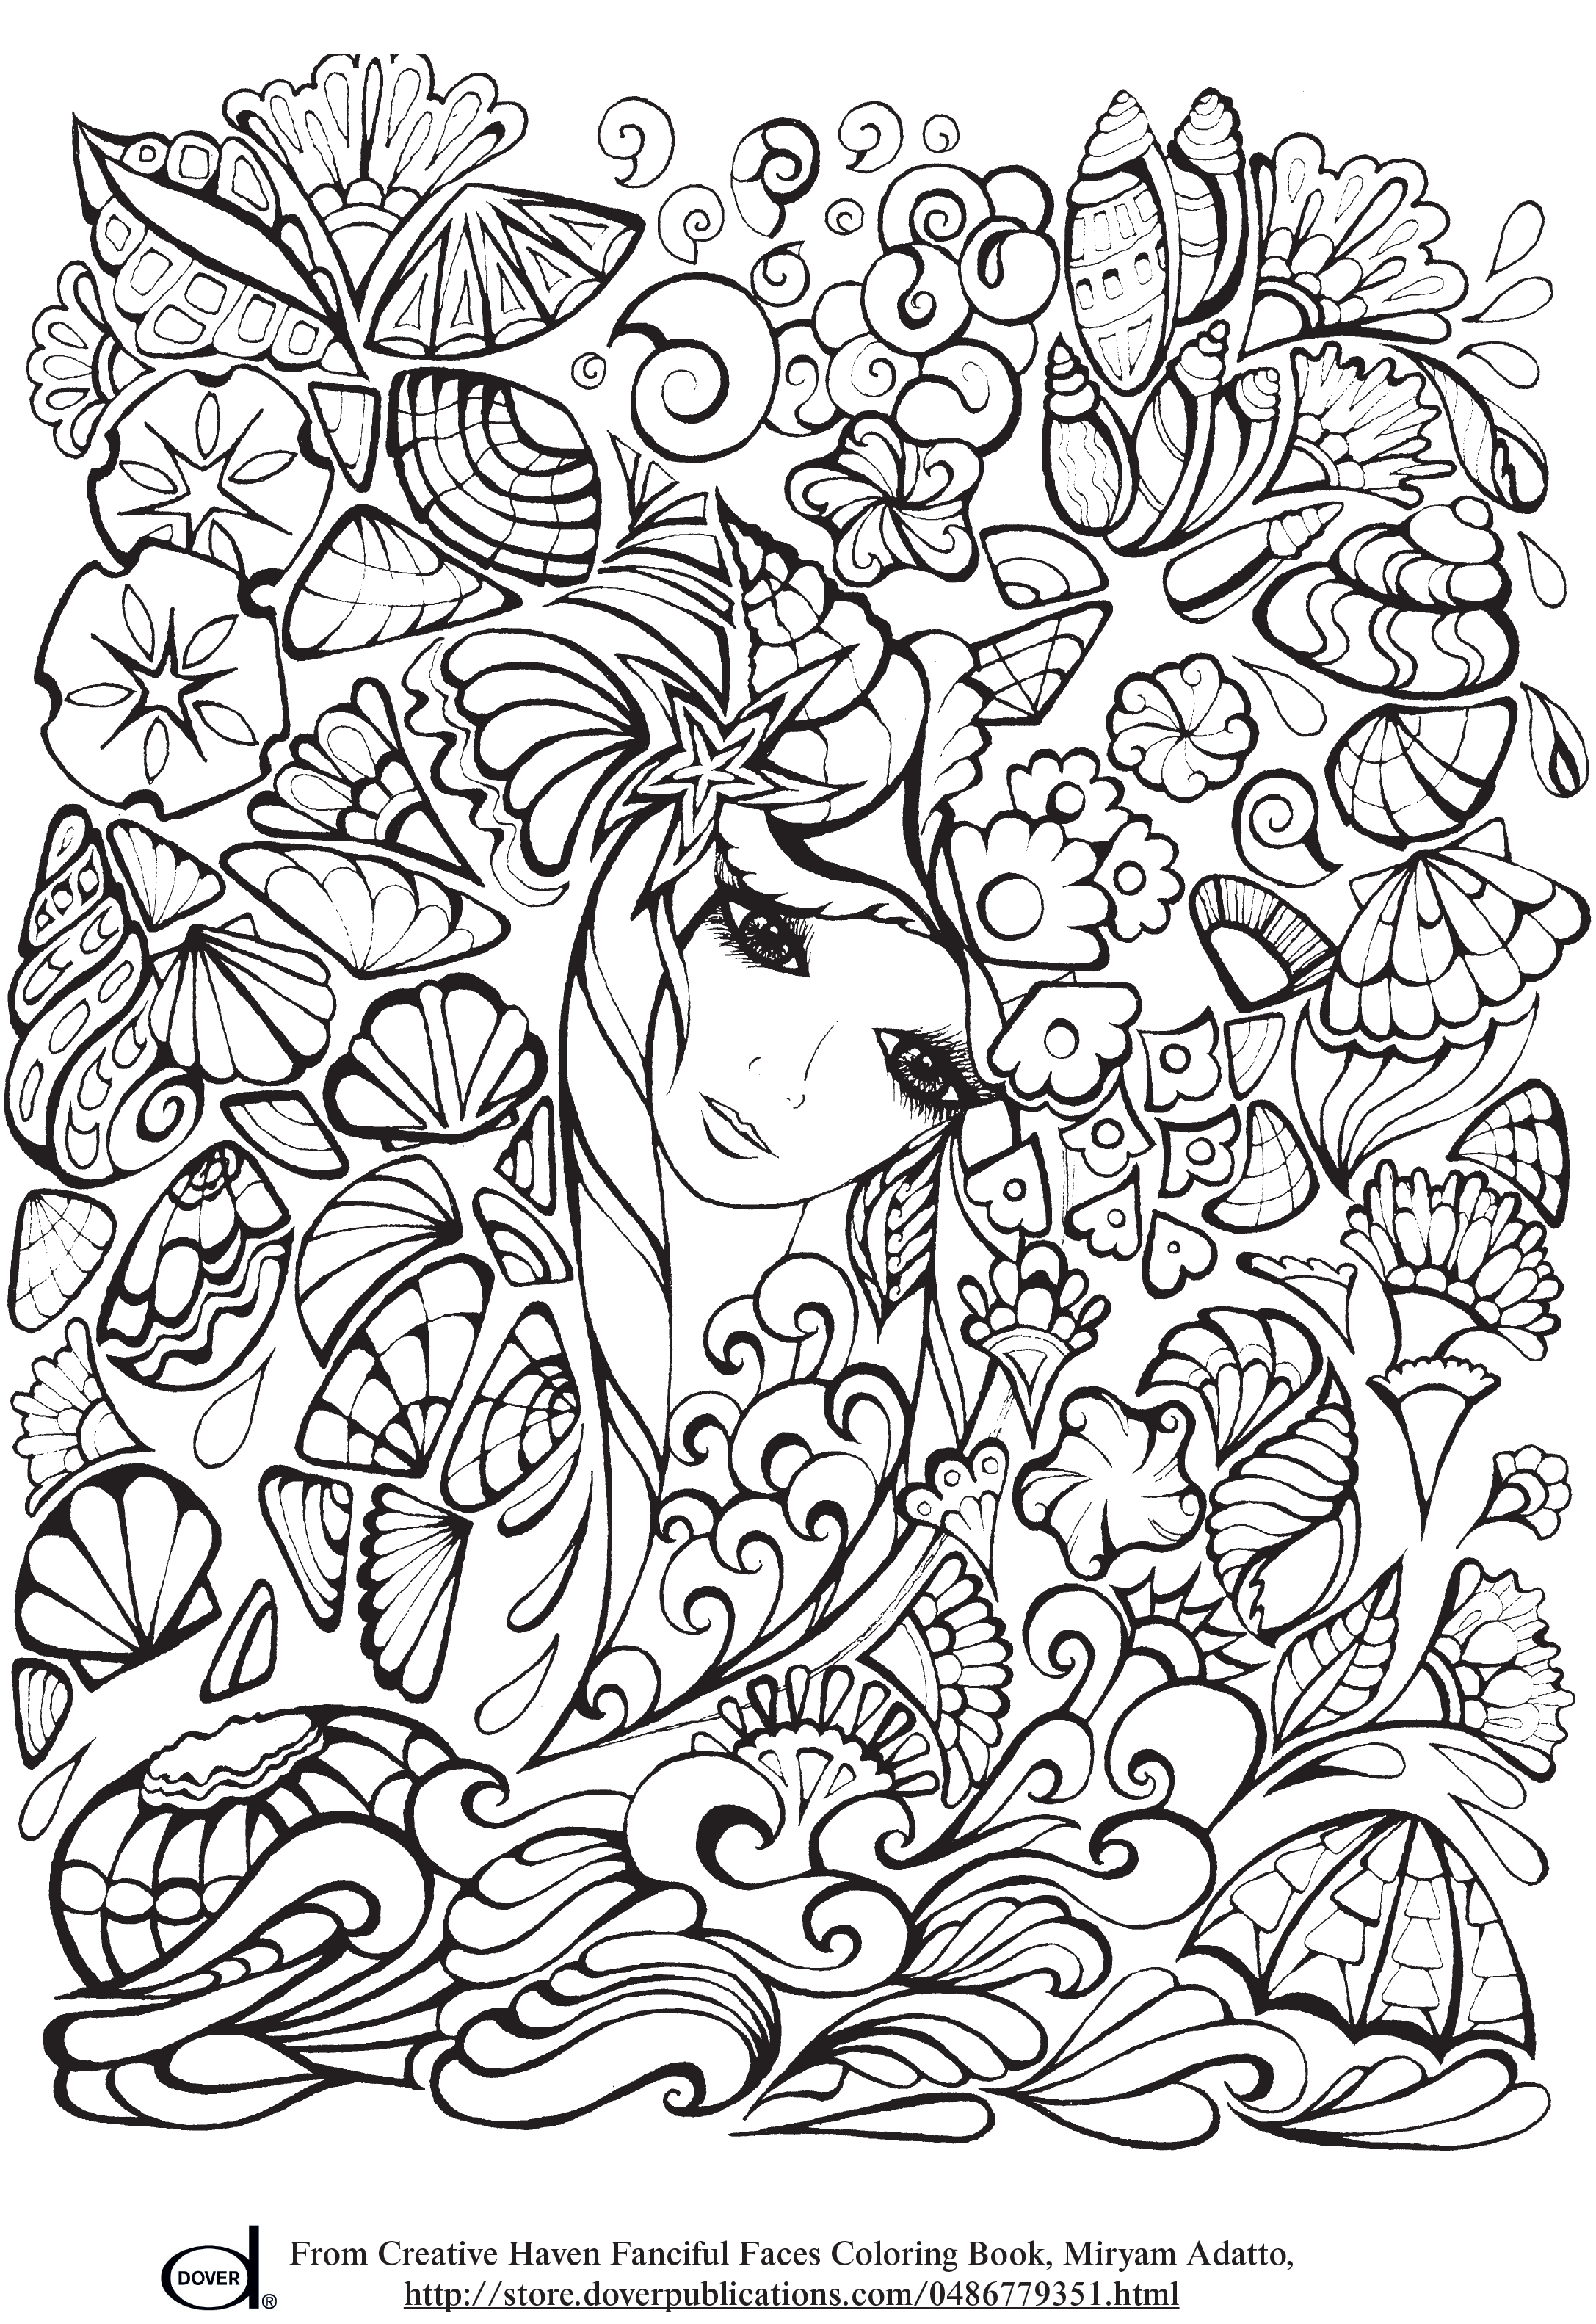 Free Printable Adult Coloring Pages - Anime - Girl with Flowers